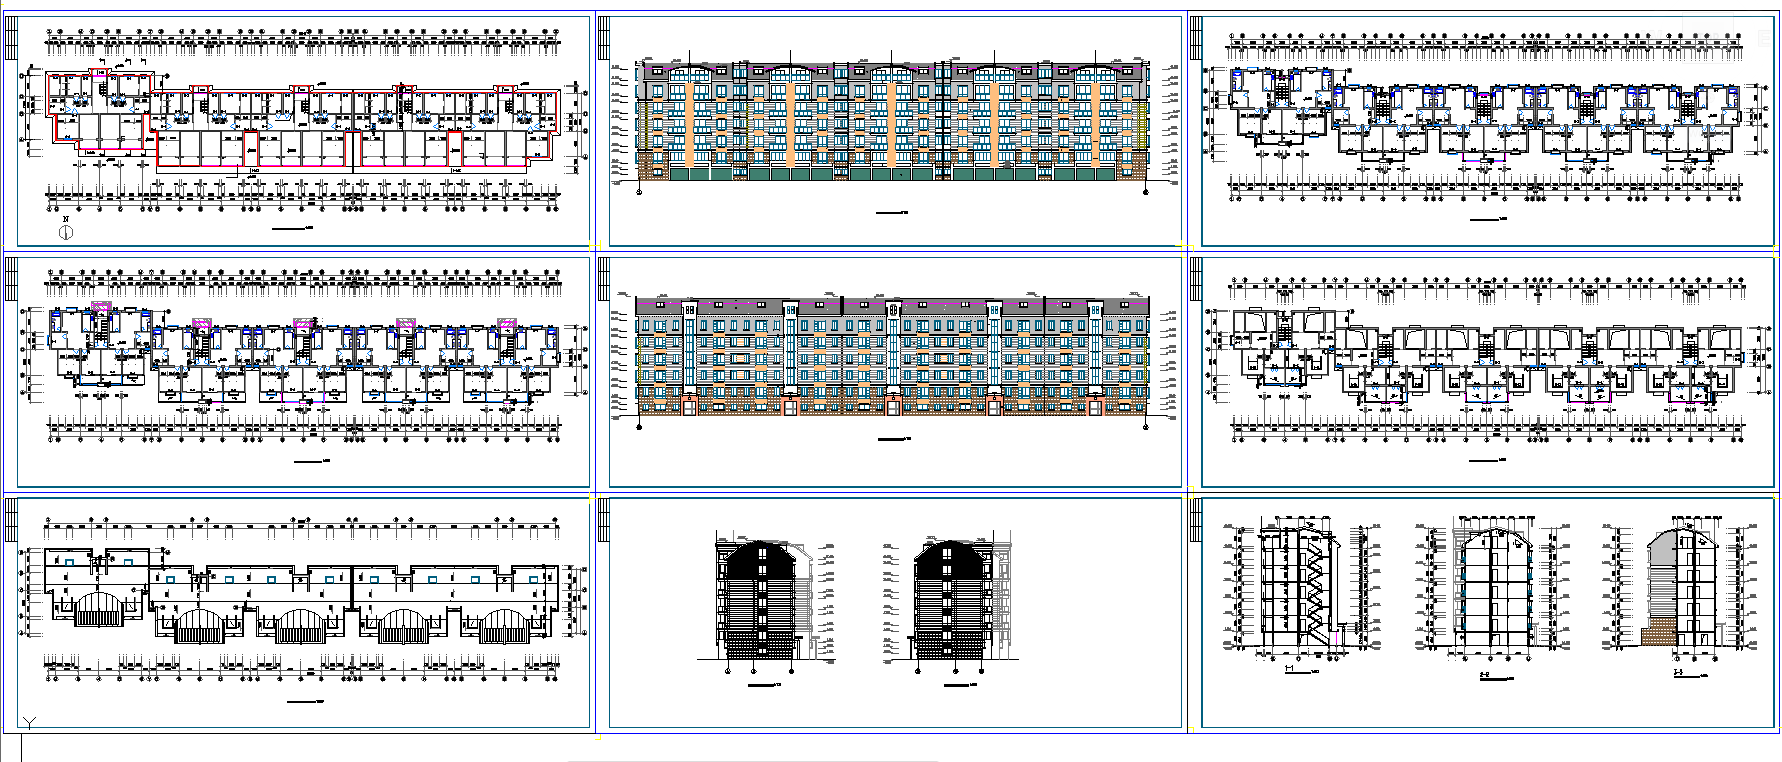 92.5 Sq mtr 2.5 Bhk apartment plan in cad dwg files